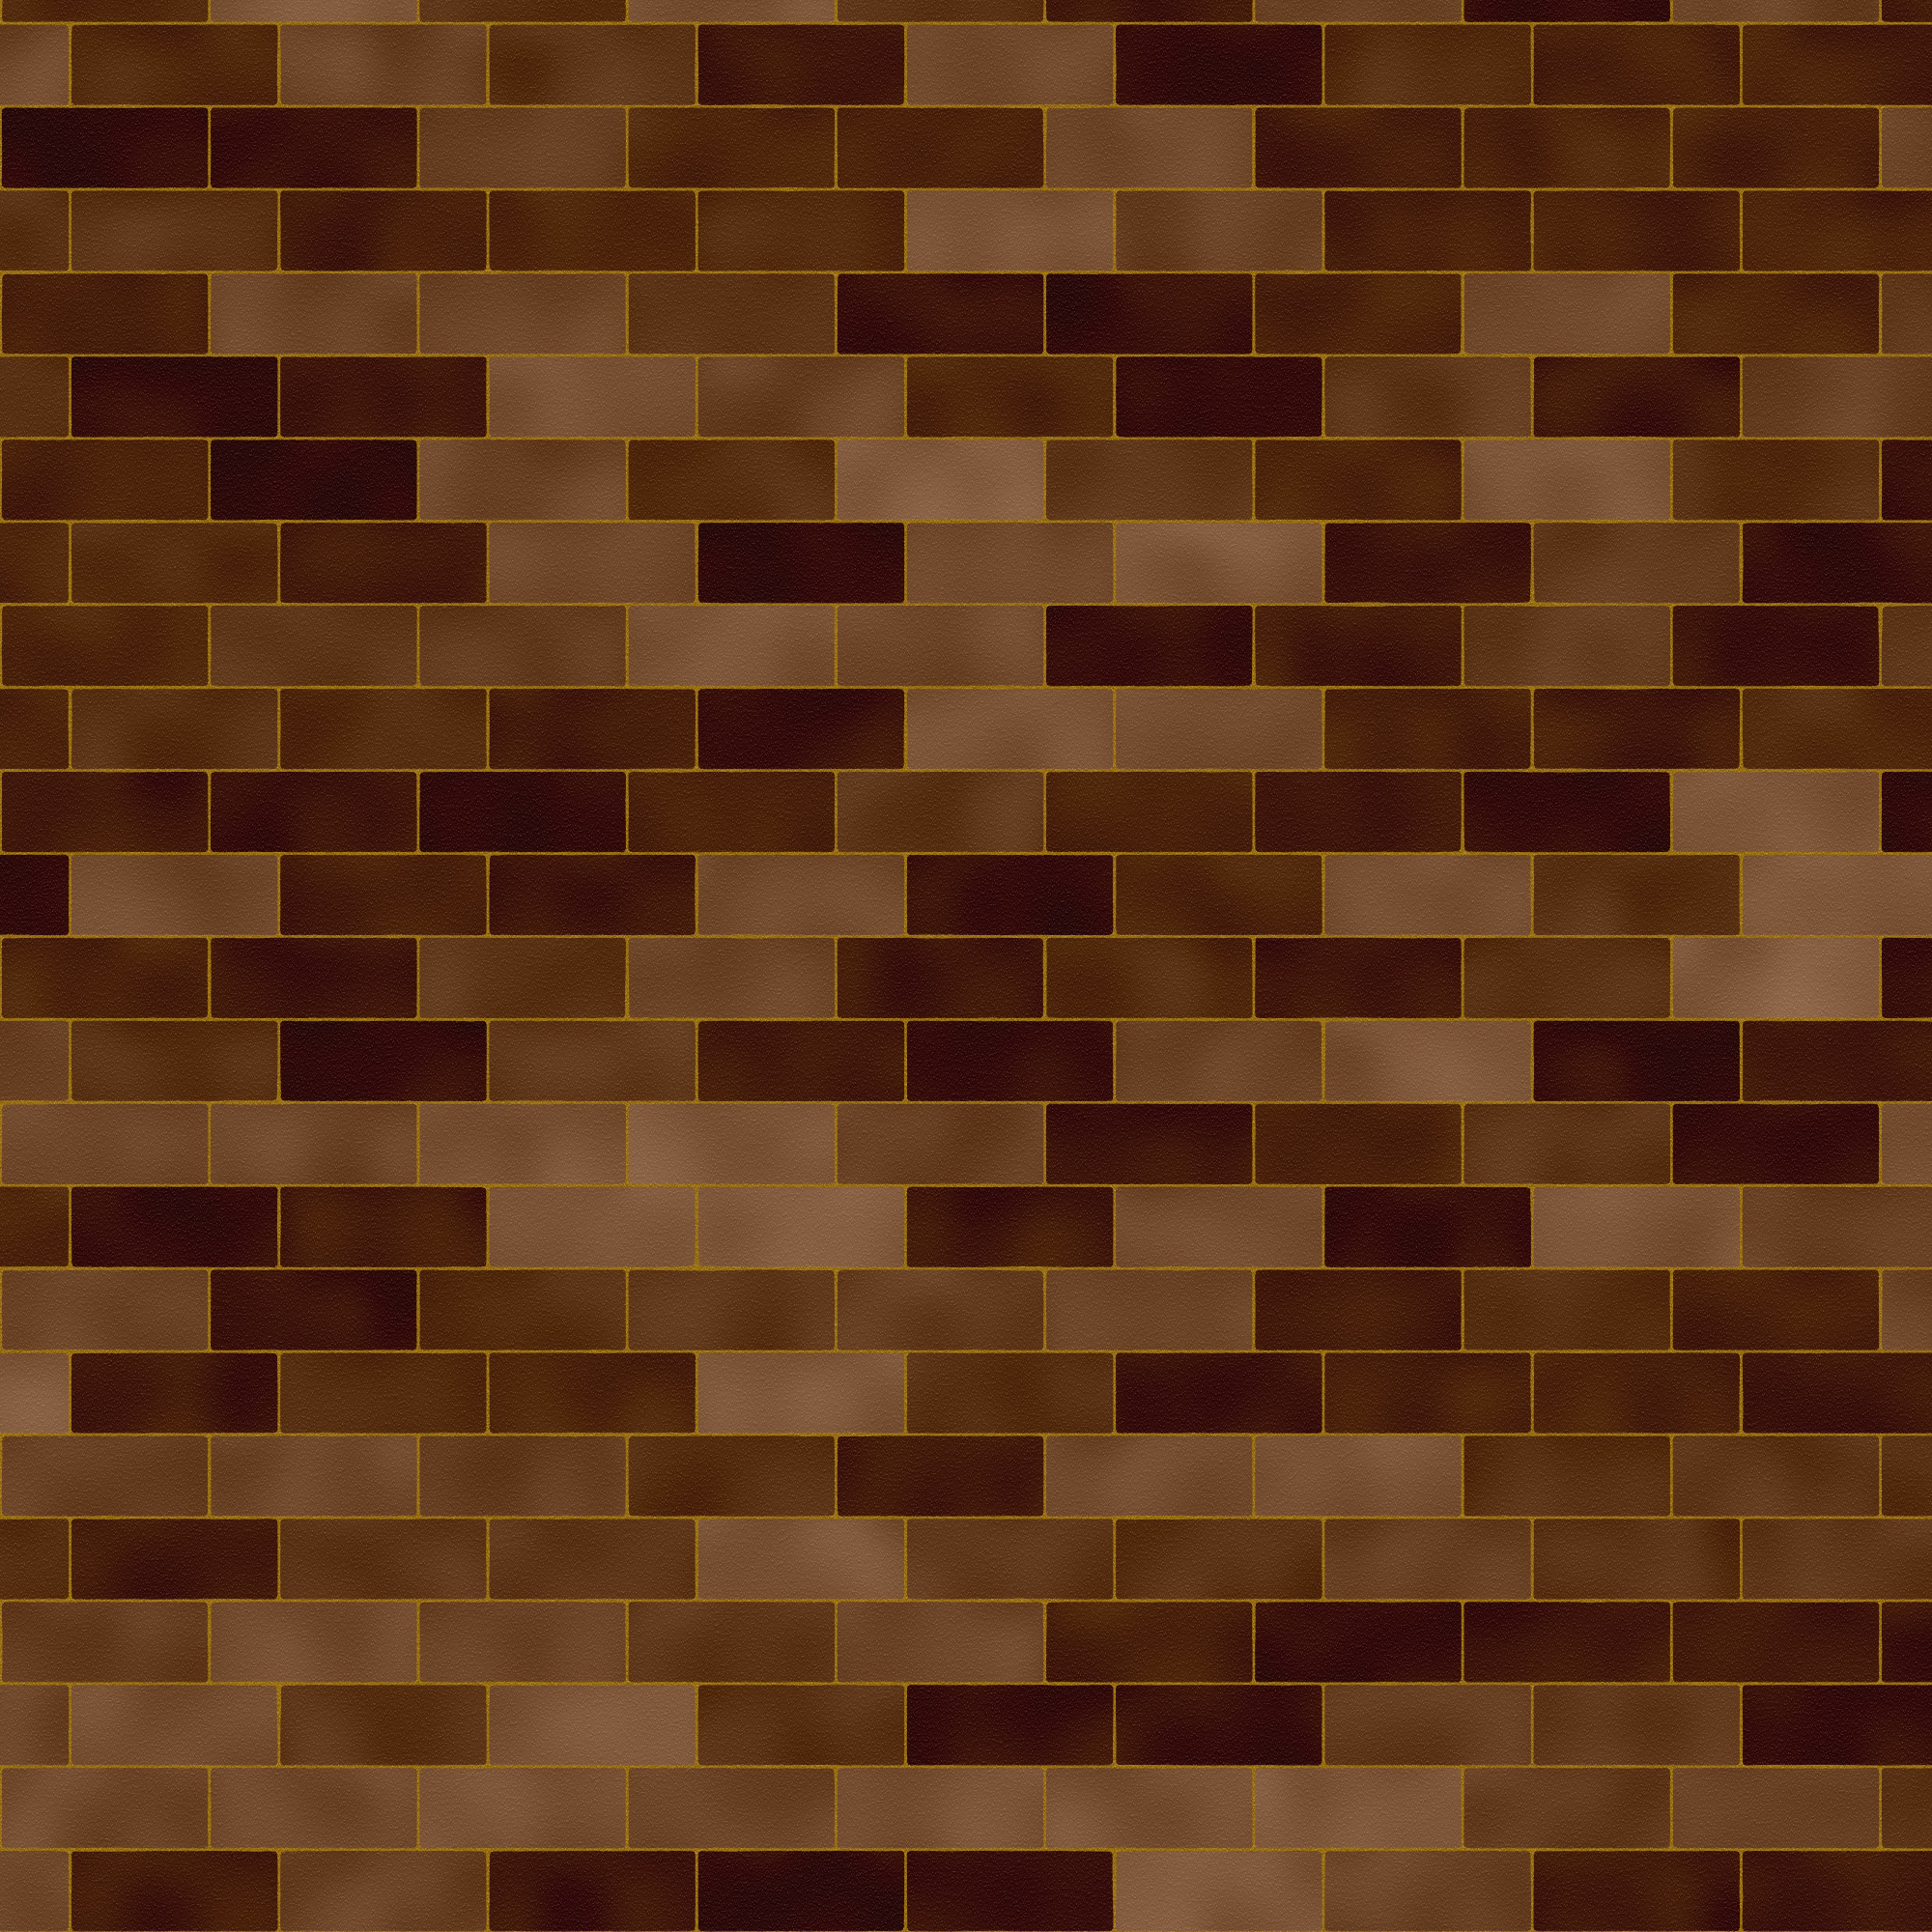 brown brick wall texture, brown brick wall, download photo, background, texture